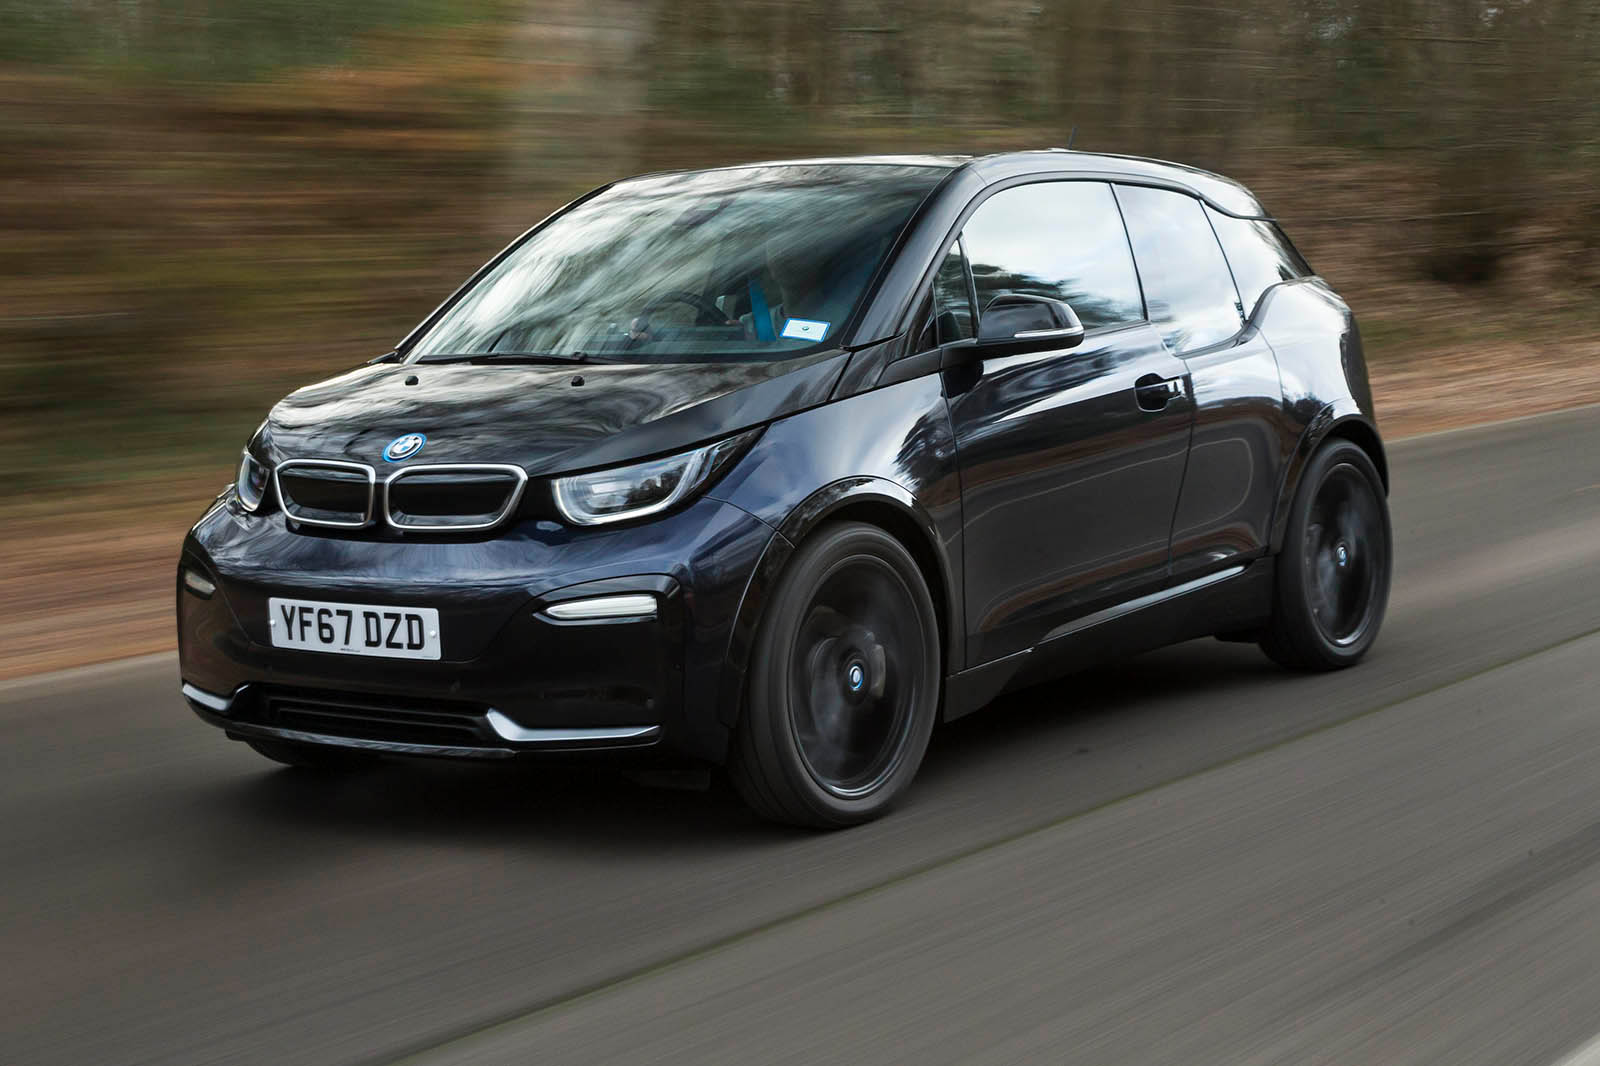 BMW i3 will no longer be sold in the US